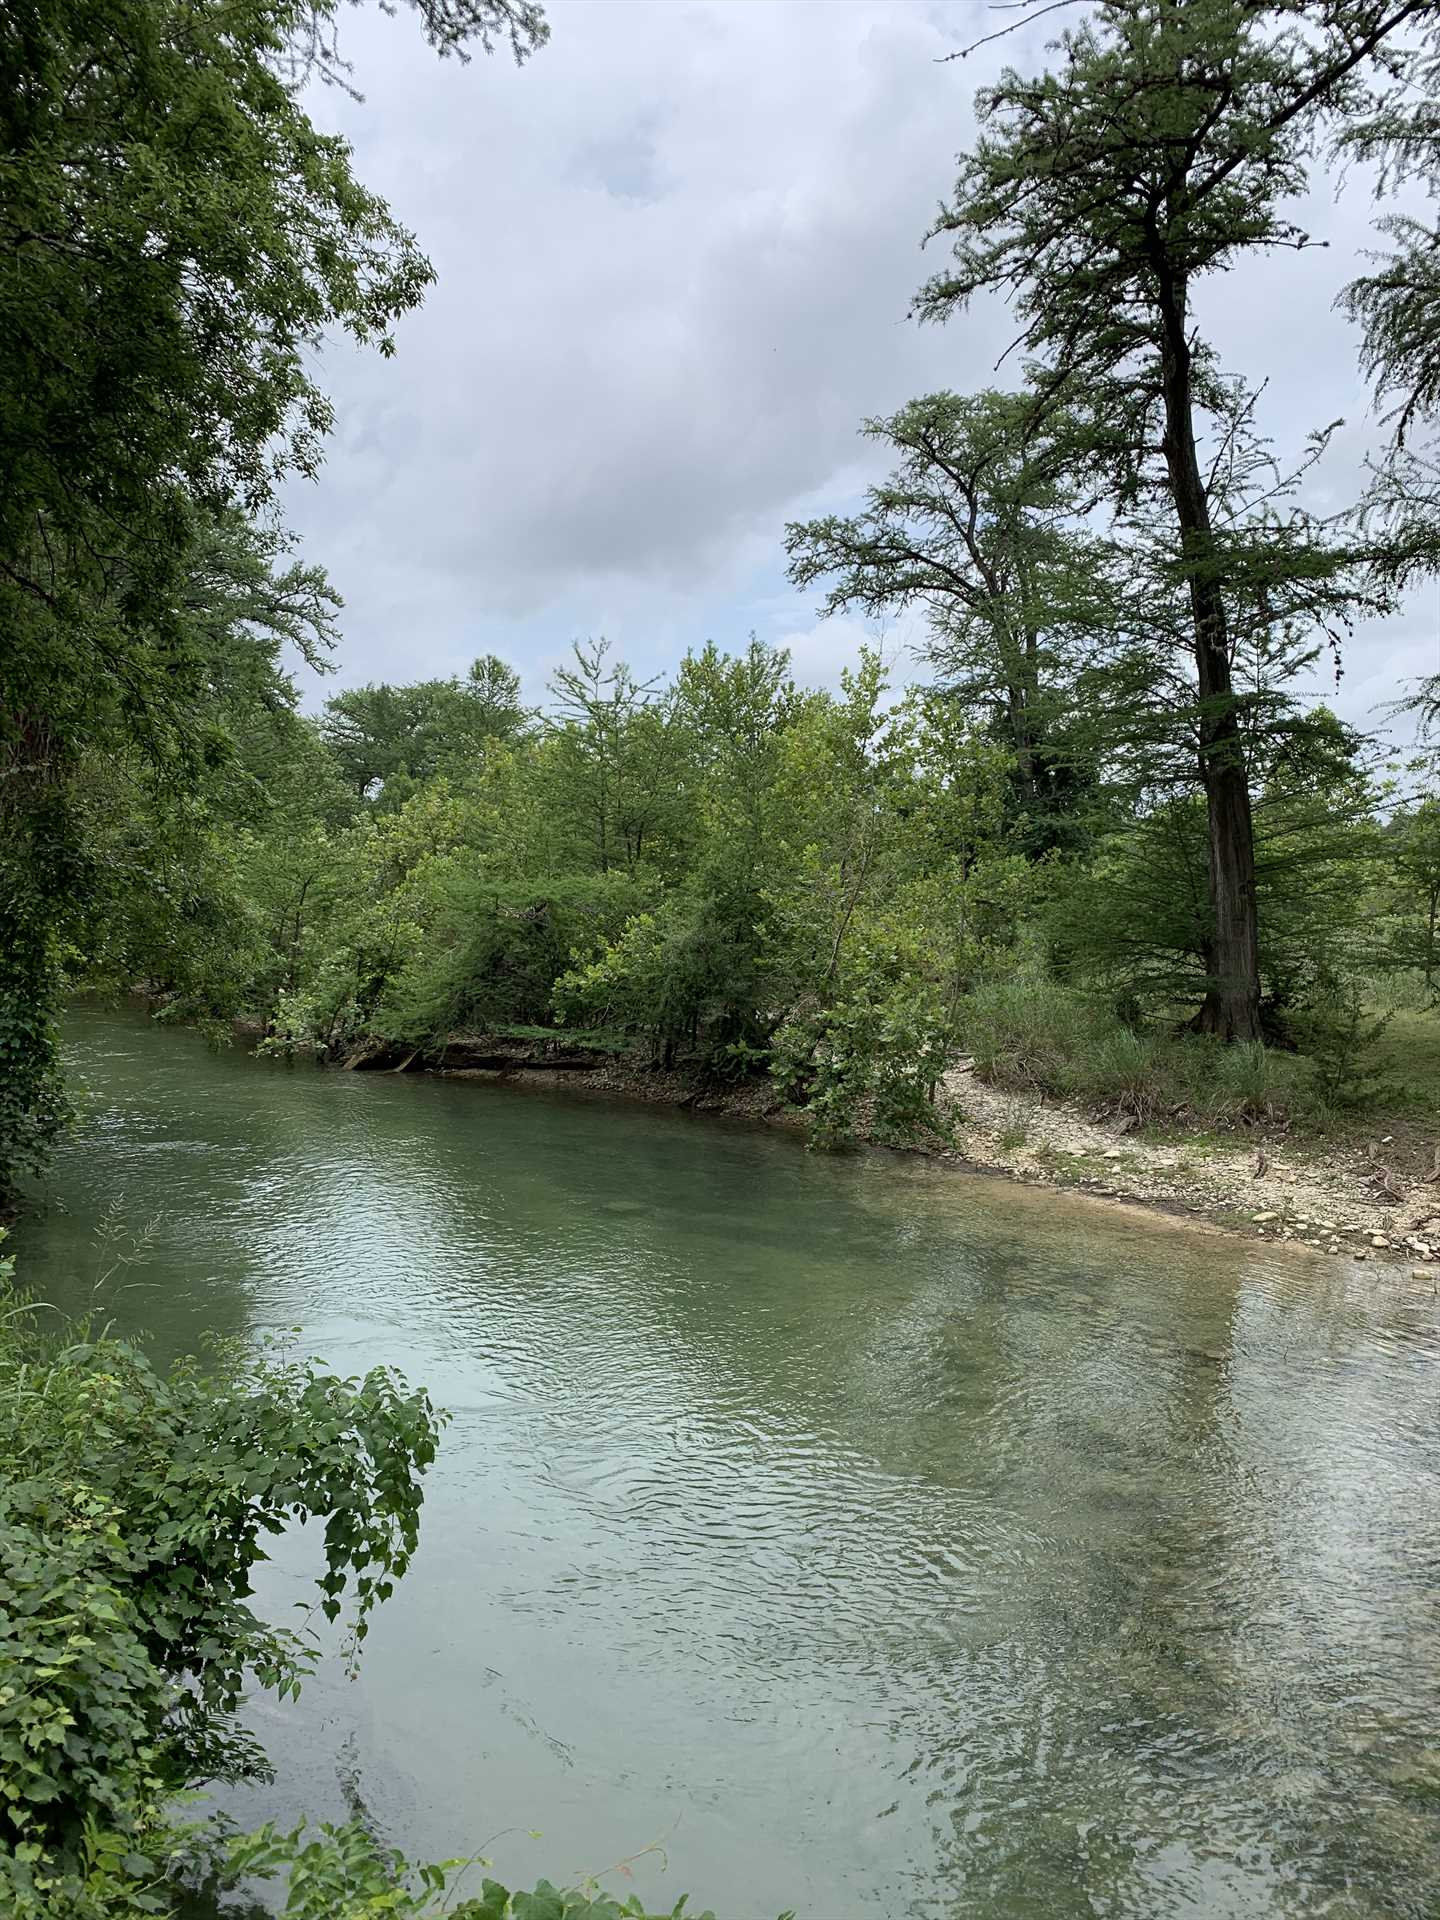 The river awaits! The retreat makes the Medina your private tubing, fishing, kayaking, and swimming paradise.